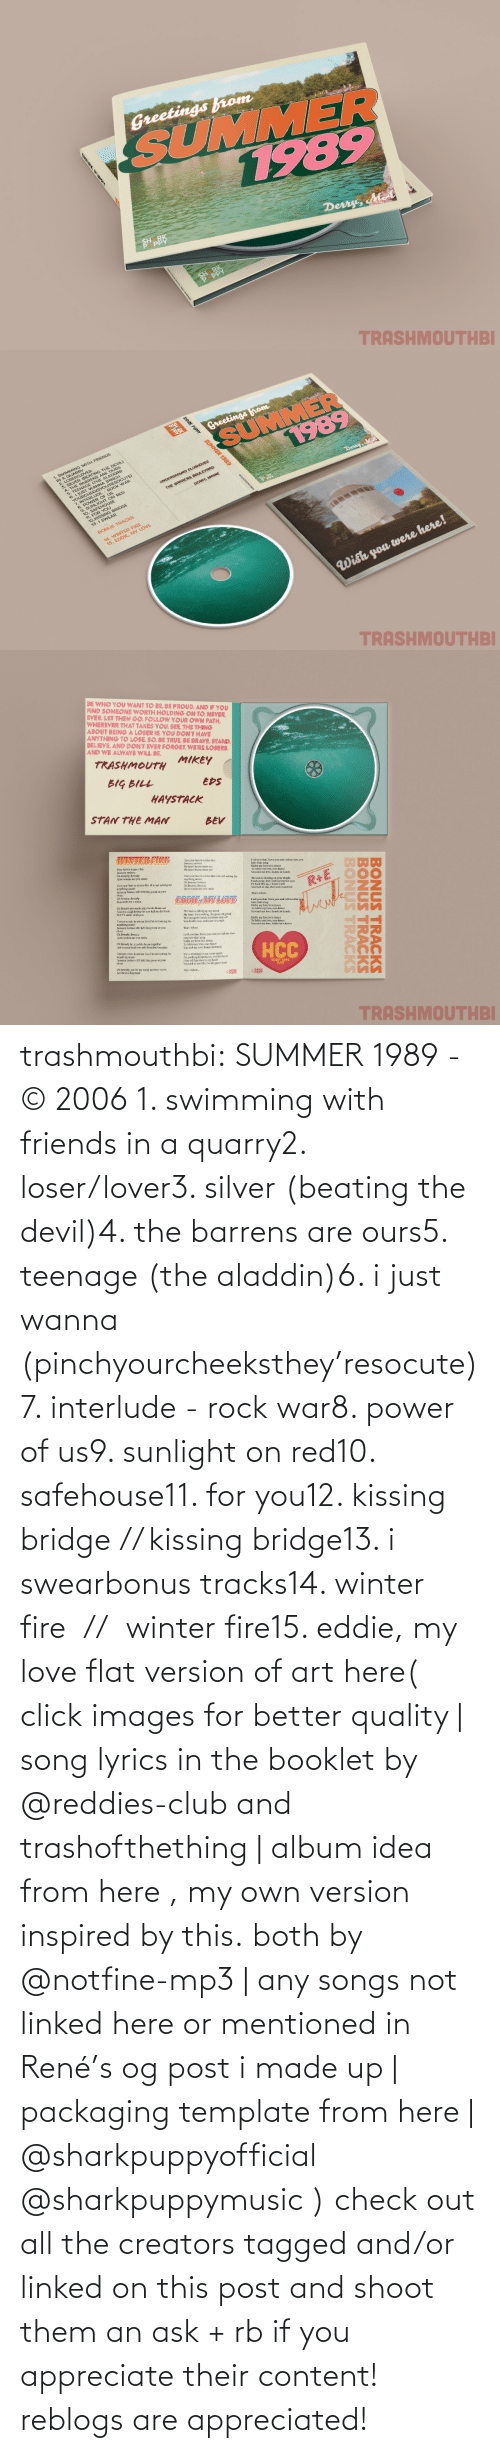 ask: trashmouthbi: SUMMER 1989 - © 2006 1. swimming with friends in a quarry2. loser/lover3. silver (beating the devil)4. the barrens are ours5. teenage (the aladdin)6. i just wanna (pinchyourcheeksthey'resocute)7. interlude - rock war8. power of us9. sunlight on red10. safehouse11. for you12. kissing bridge // kissing bridge13. i swearbonus tracks14. winter fire  //  winter fire15. eddie, my love flat version of art here( click images for better quality | song lyrics in the booklet by @reddies-club​ and trashofthething | album idea from here , my own version inspired by this. both by @notfine-mp3​ | any songs not linked here or mentioned in René's og post i made up | packaging template from here | @sharkpuppyofficial​ @sharkpuppymusic​ ) check out all the creators tagged and/or linked on this post and shoot them an ask + rb if you appreciate their content! reblogs are appreciated!